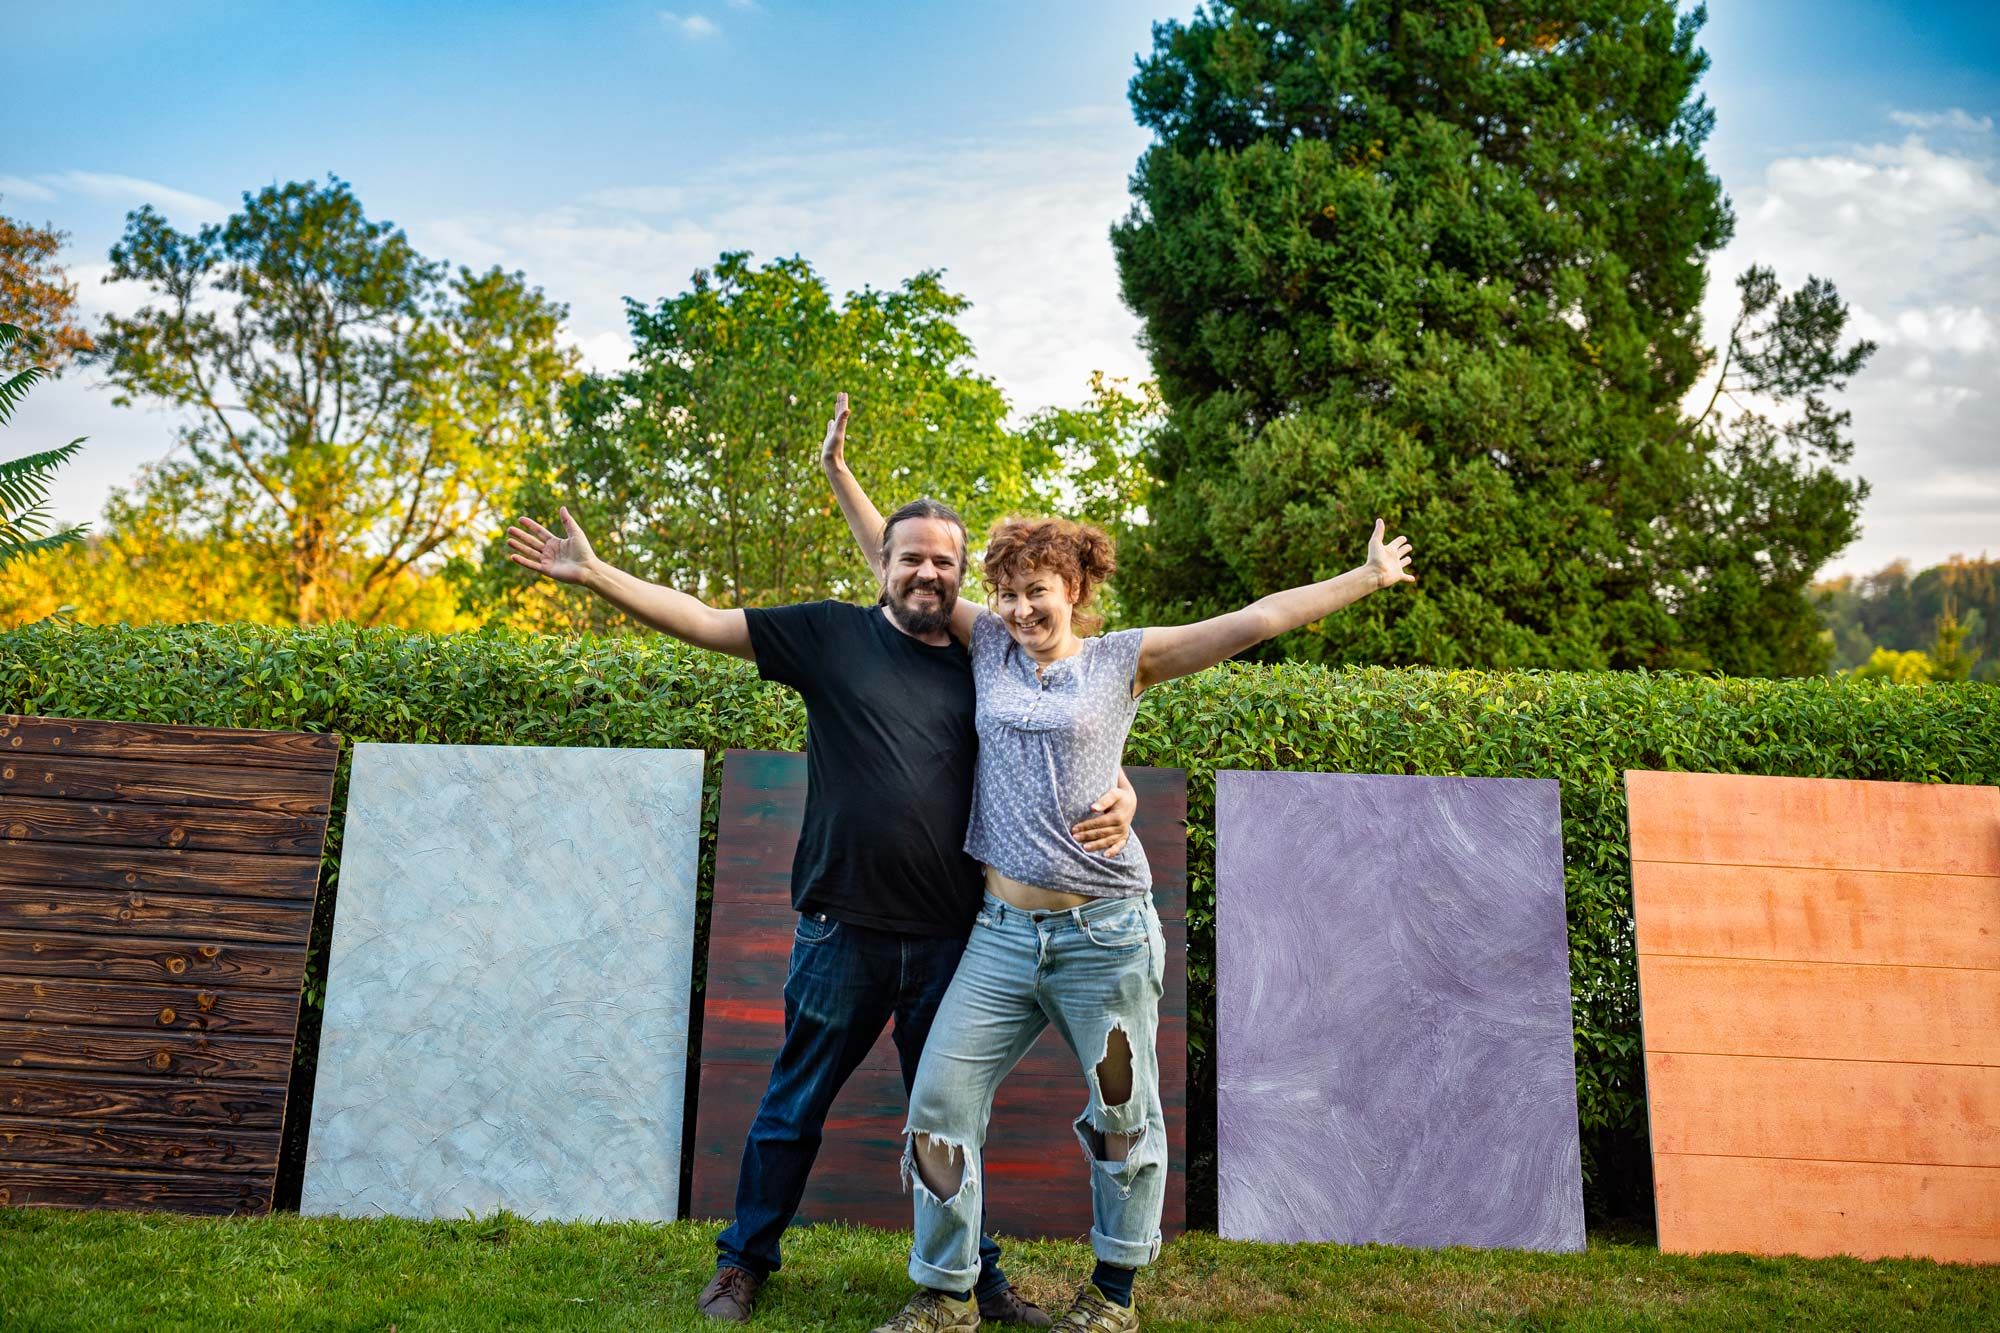 Me and Ellen standing in front of some finished painted photographic backgrounds leaned against a garden hedge.